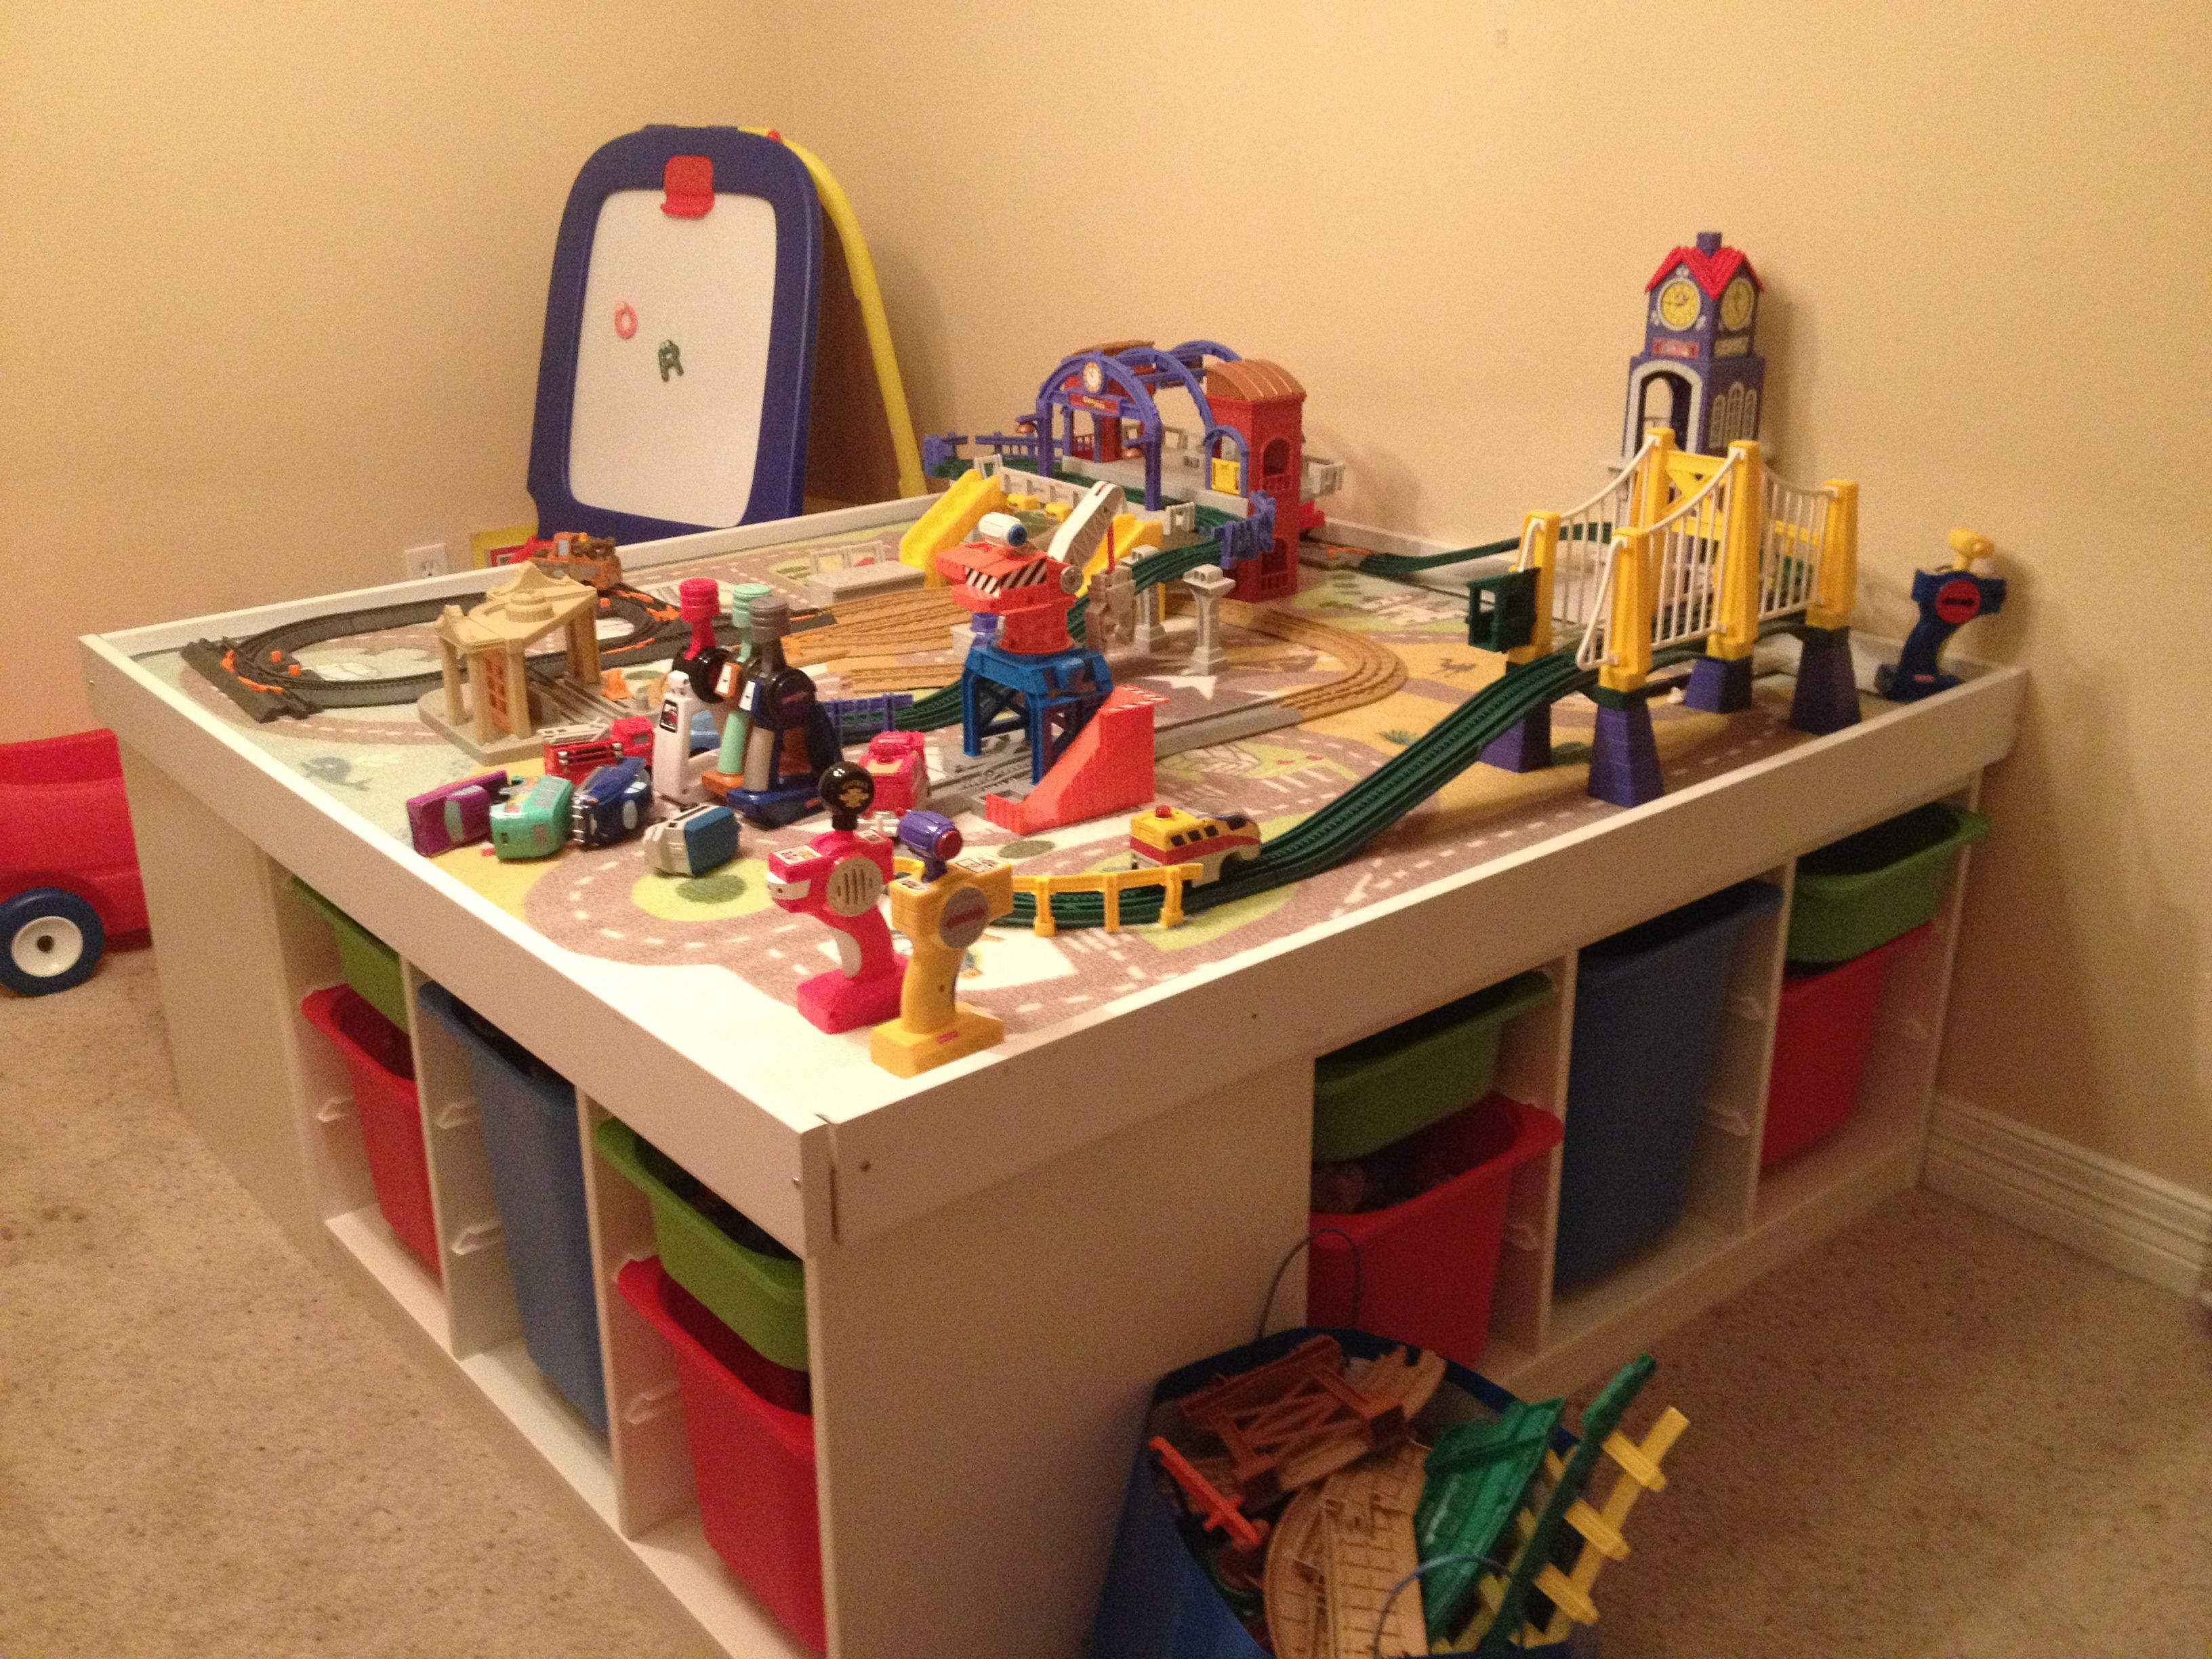 Ikea Train Table. Trofast, Particle Board, Screwdriver, Drill, Screws, And